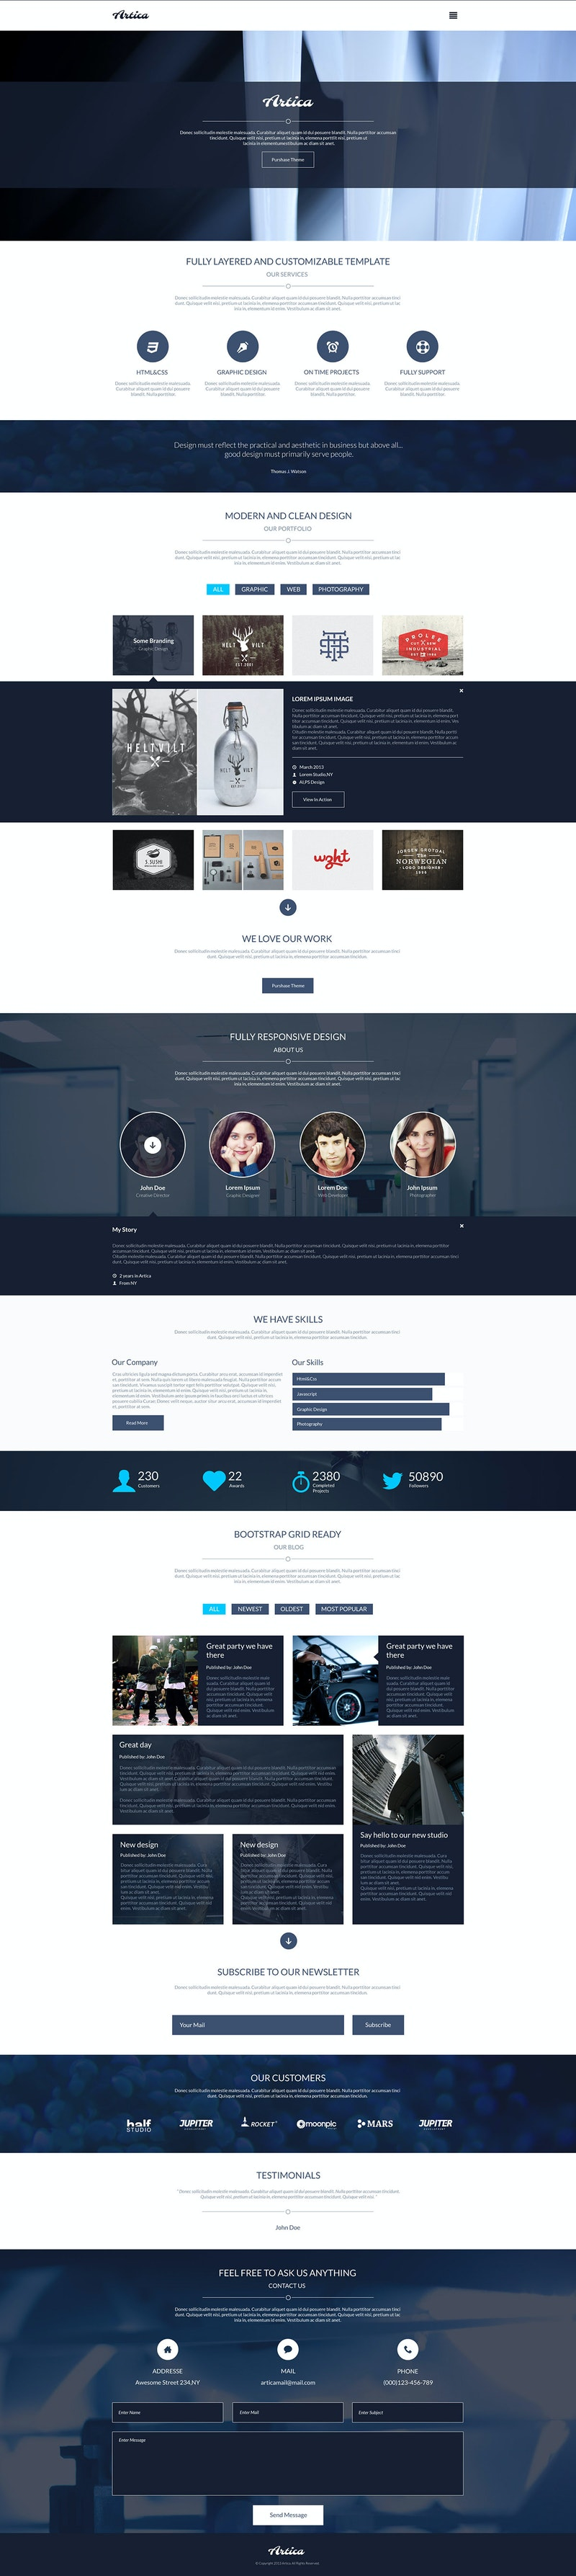 Artica - PSD One Page Web Template preview